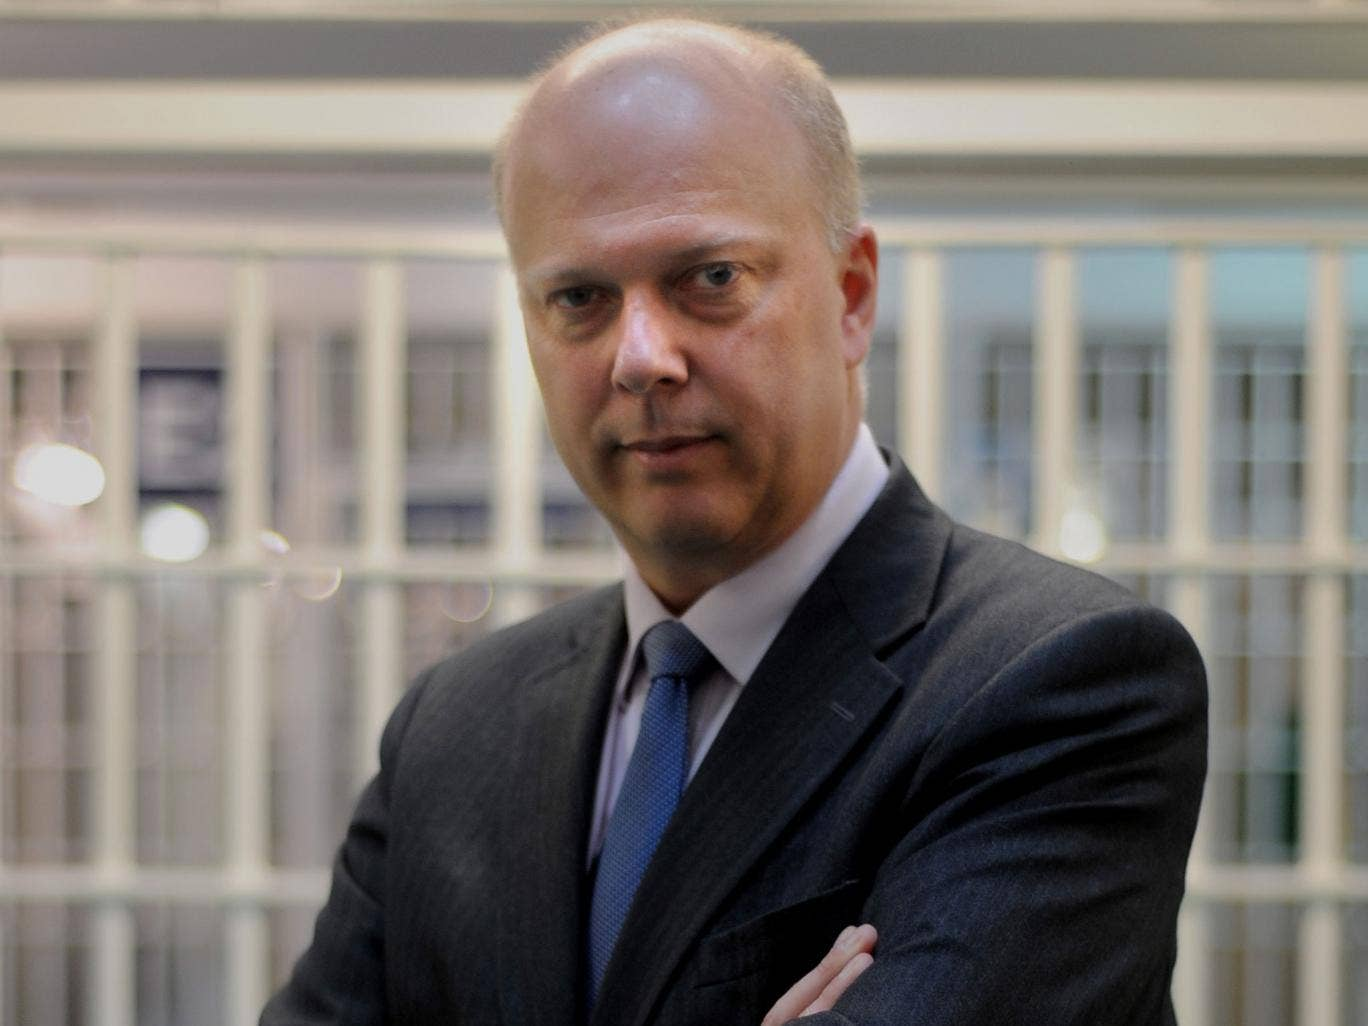 Chris Grayling: 'The Court of Protection has recently attracted media attention'